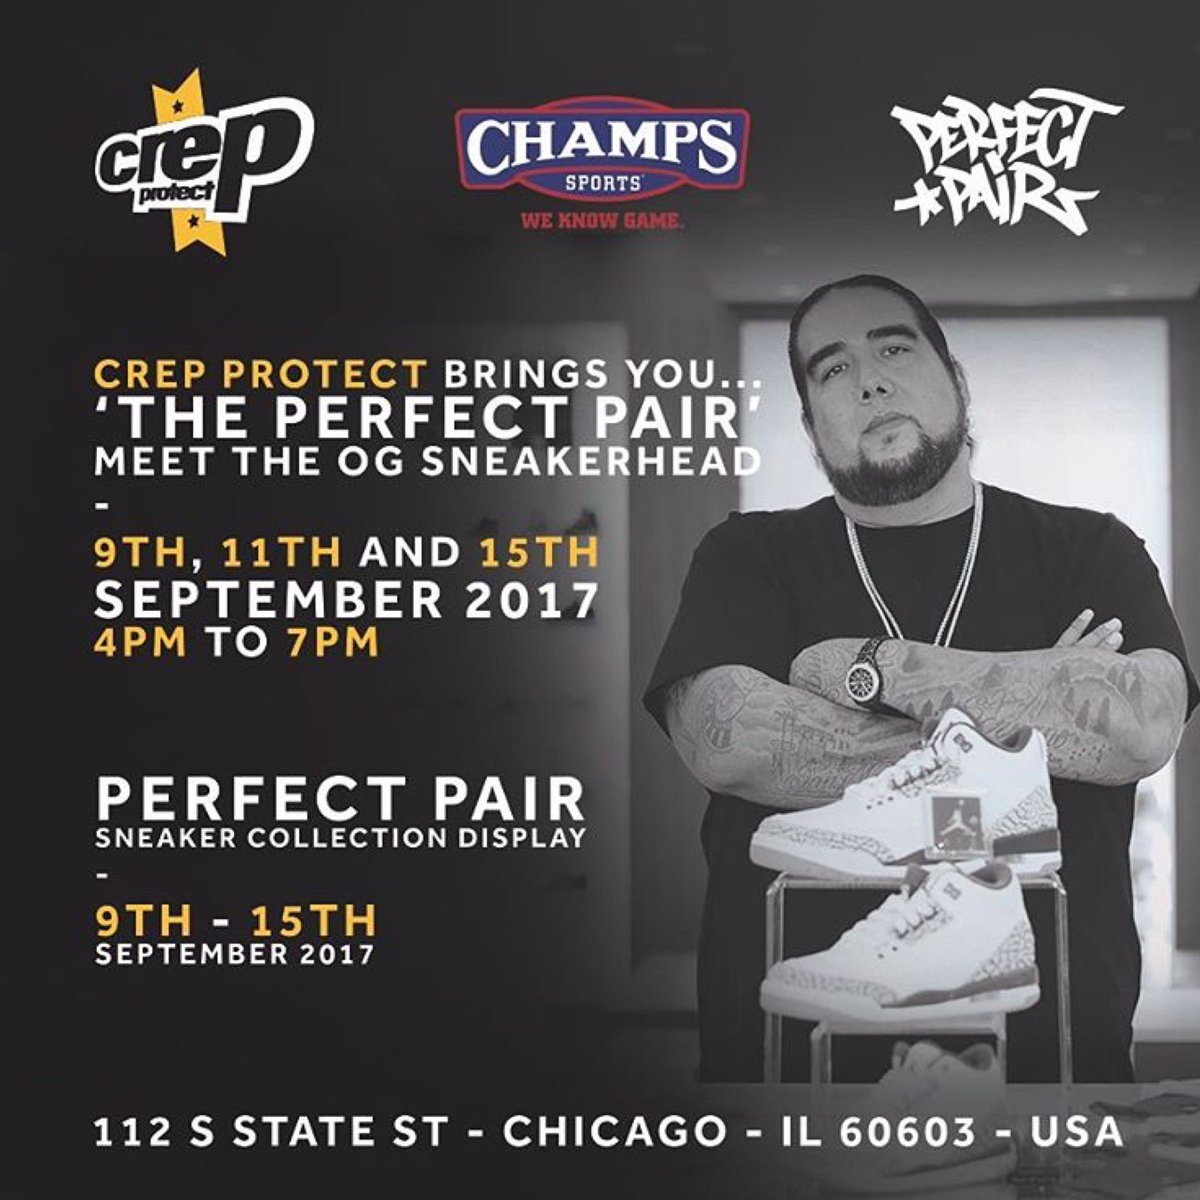 57225113 Champs Sports on Twitter: